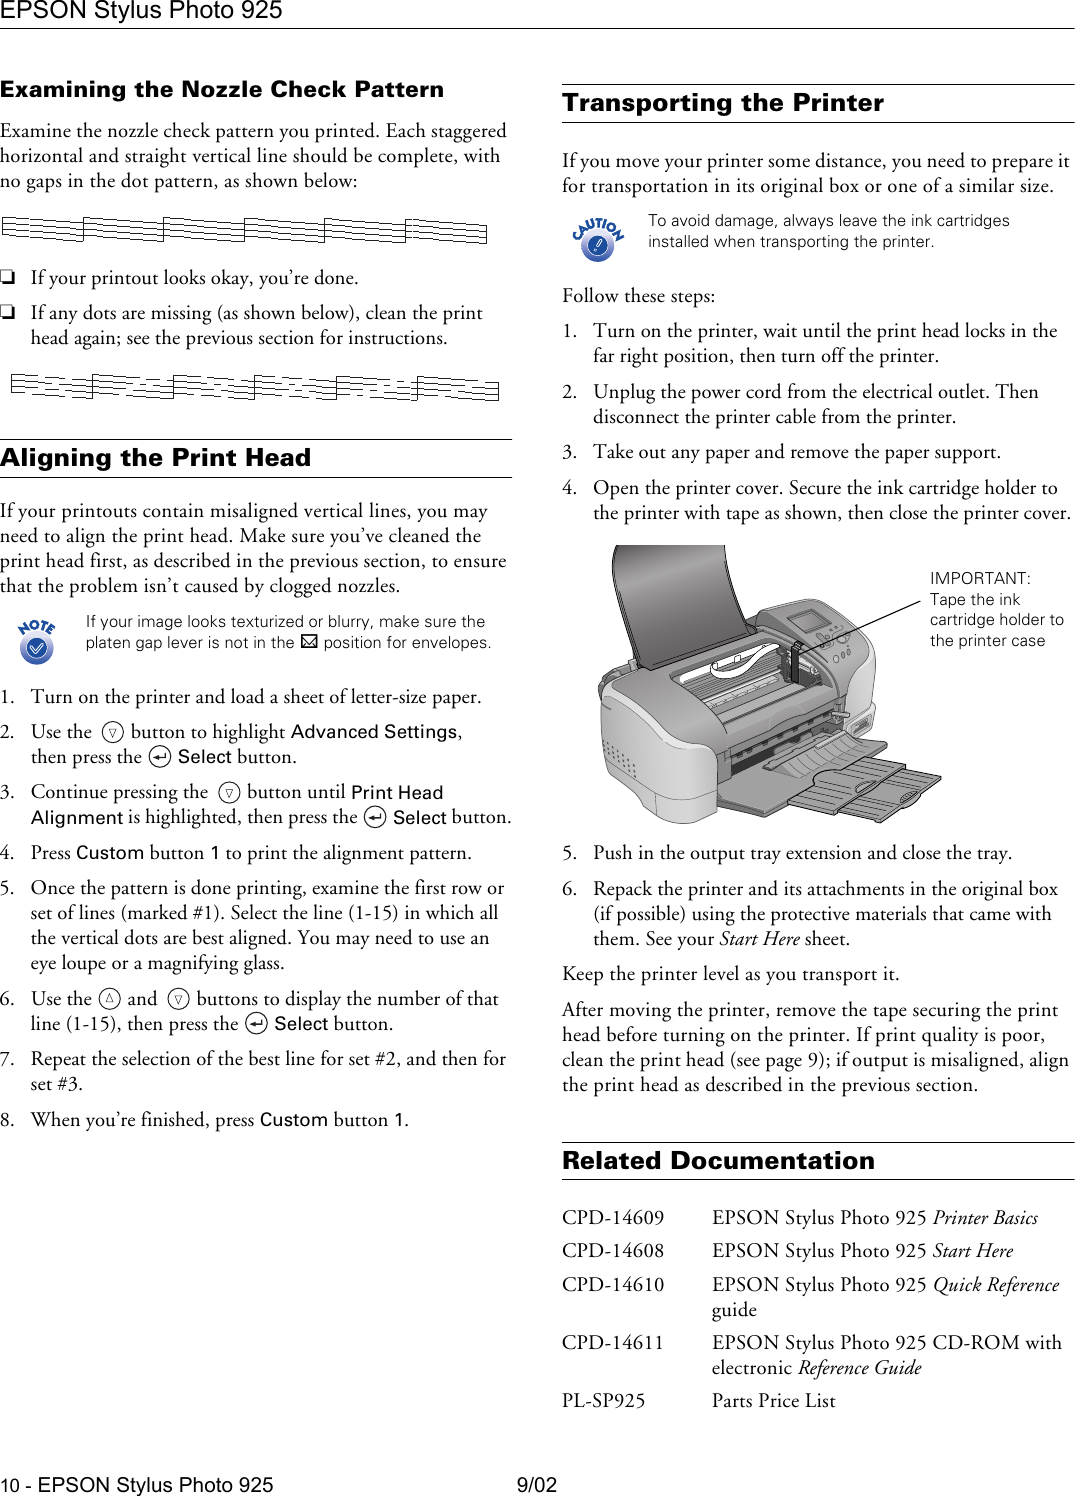 Epson Stylus Photo 925 Ink Jet Printer Product Information Guide